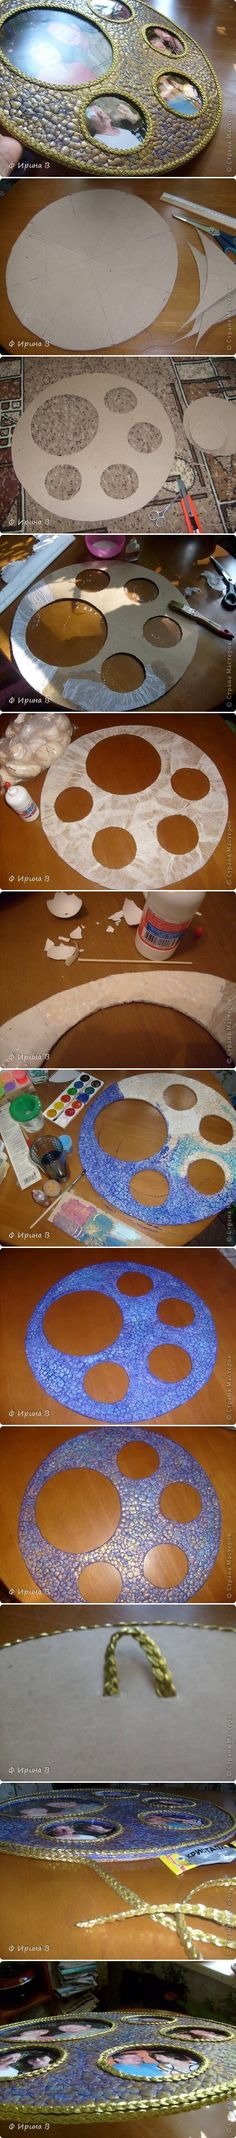 DIY Eggshell Panorama Frame DIY Projects | UsefulDIY.com Follow Us on Facebook ==> http://www.facebook.com/UsefulDiy